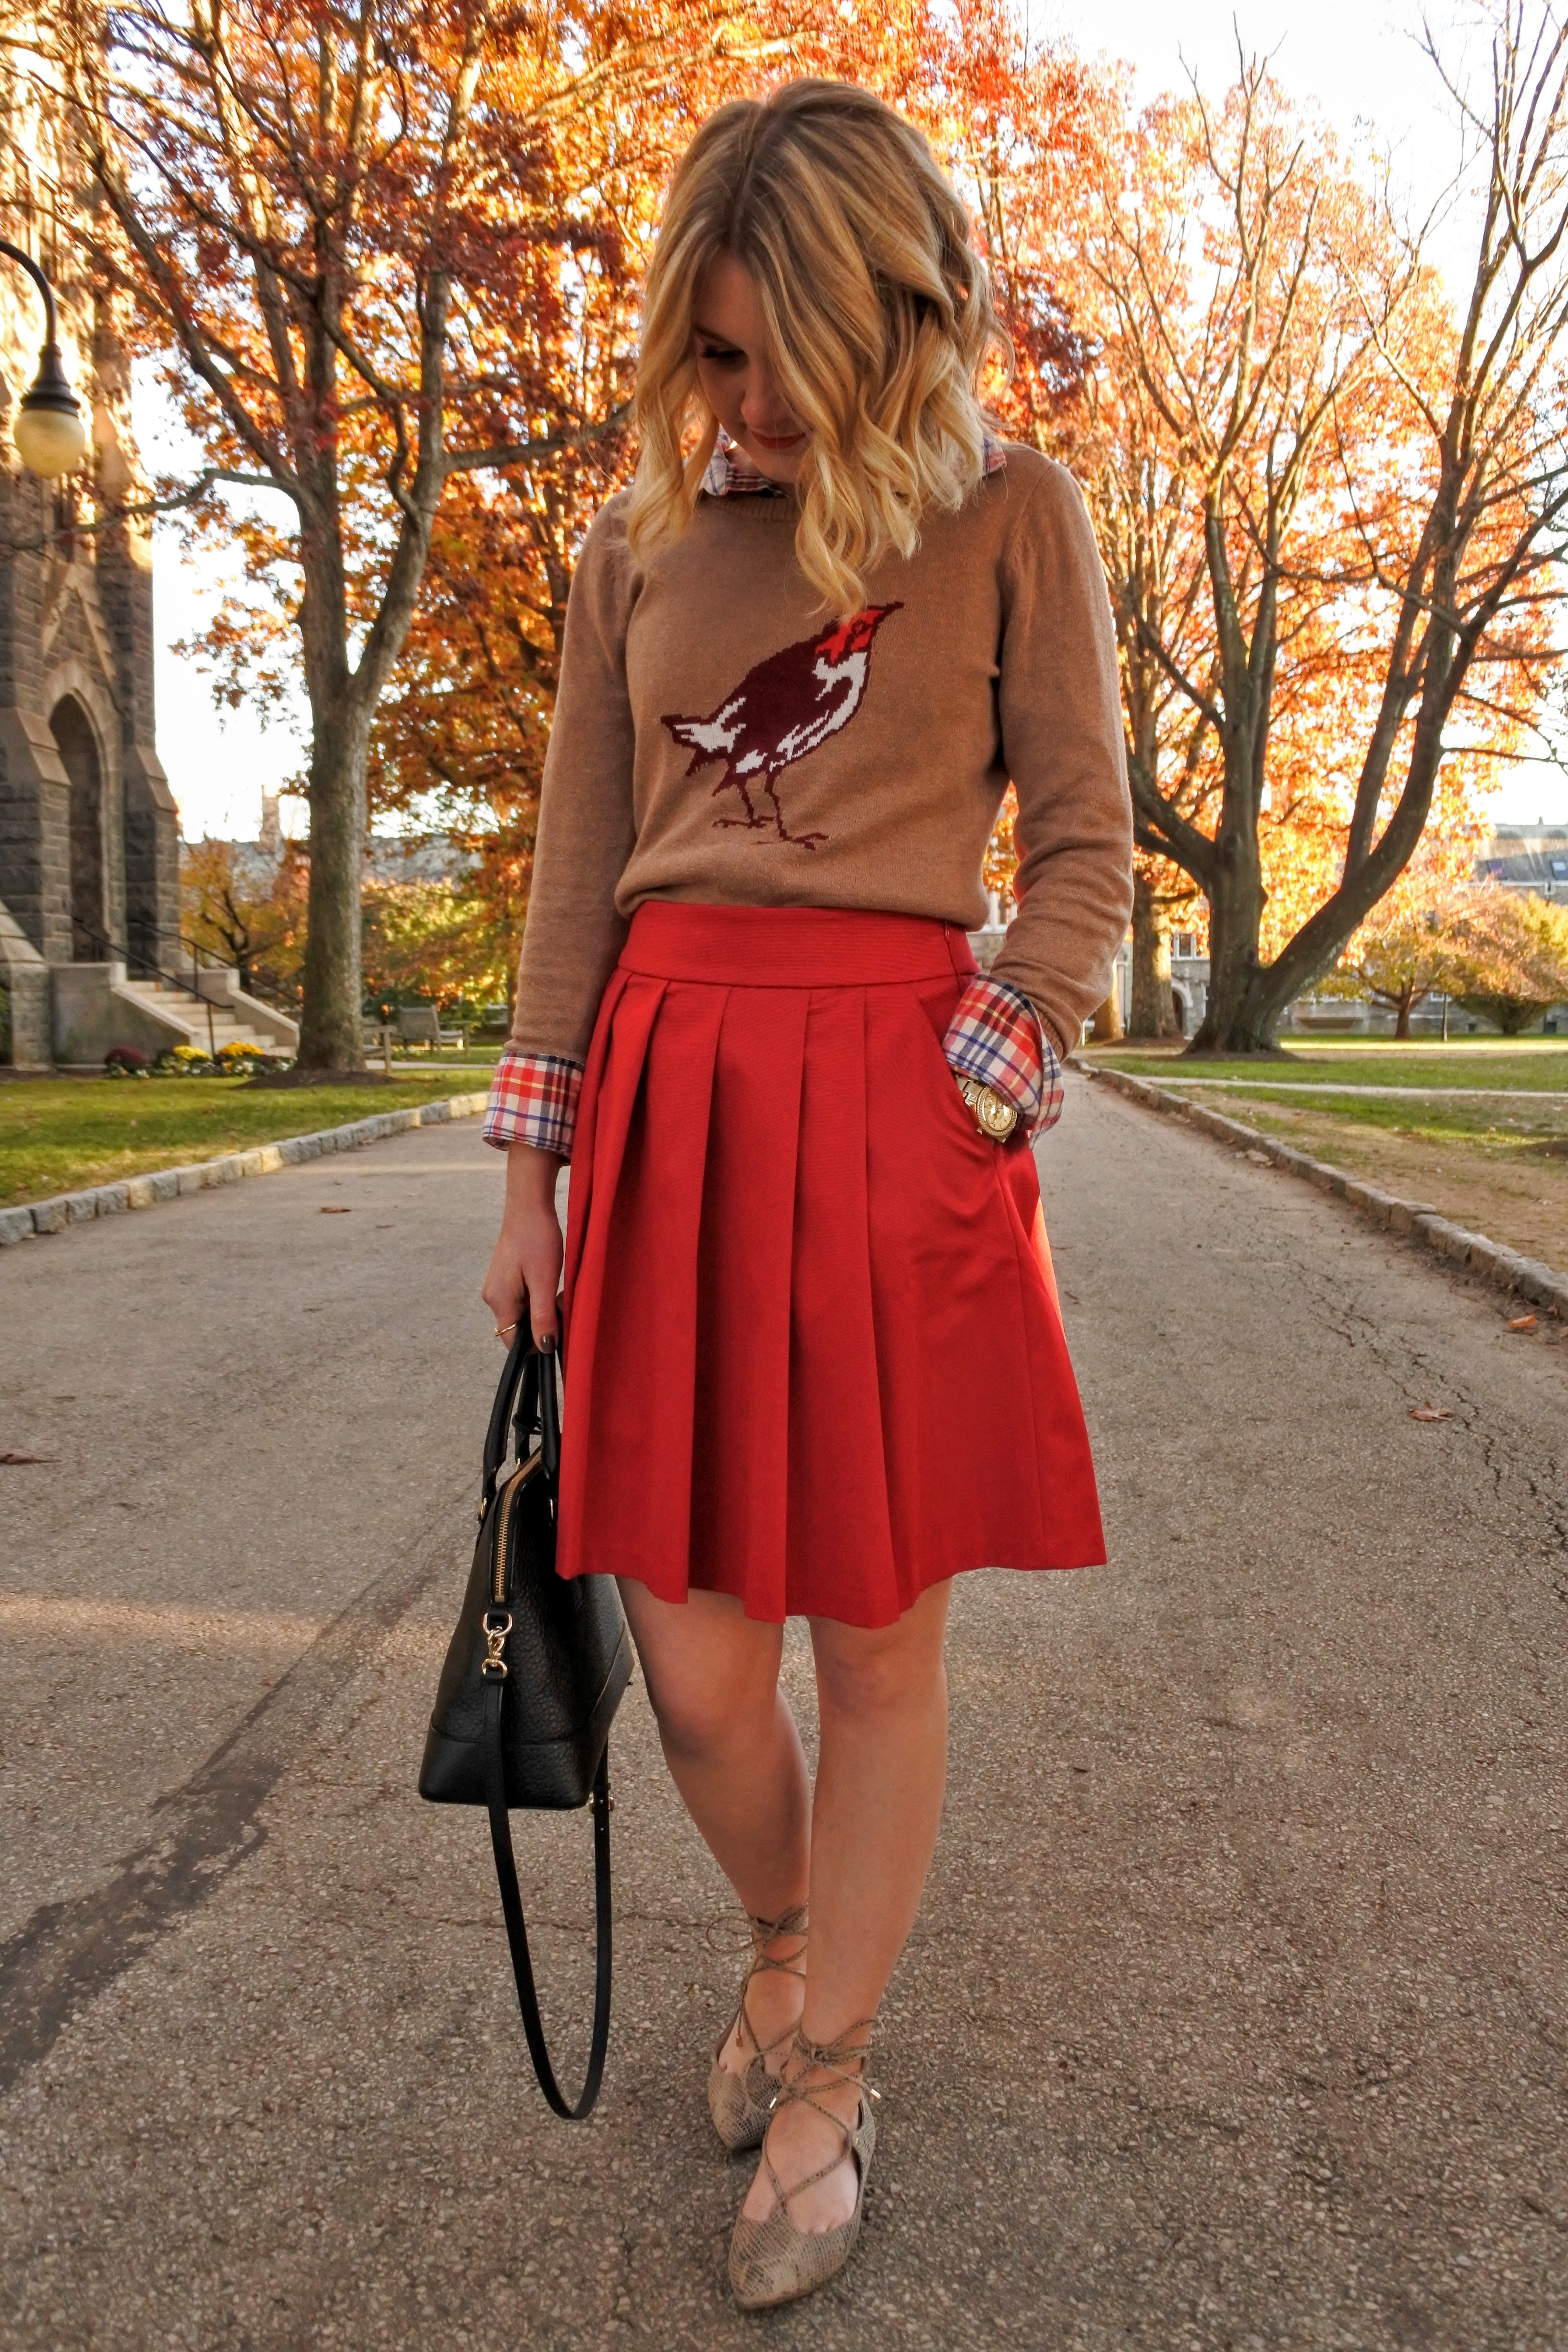 Thanksgiving Outfit: The Prettiest Red Skirt